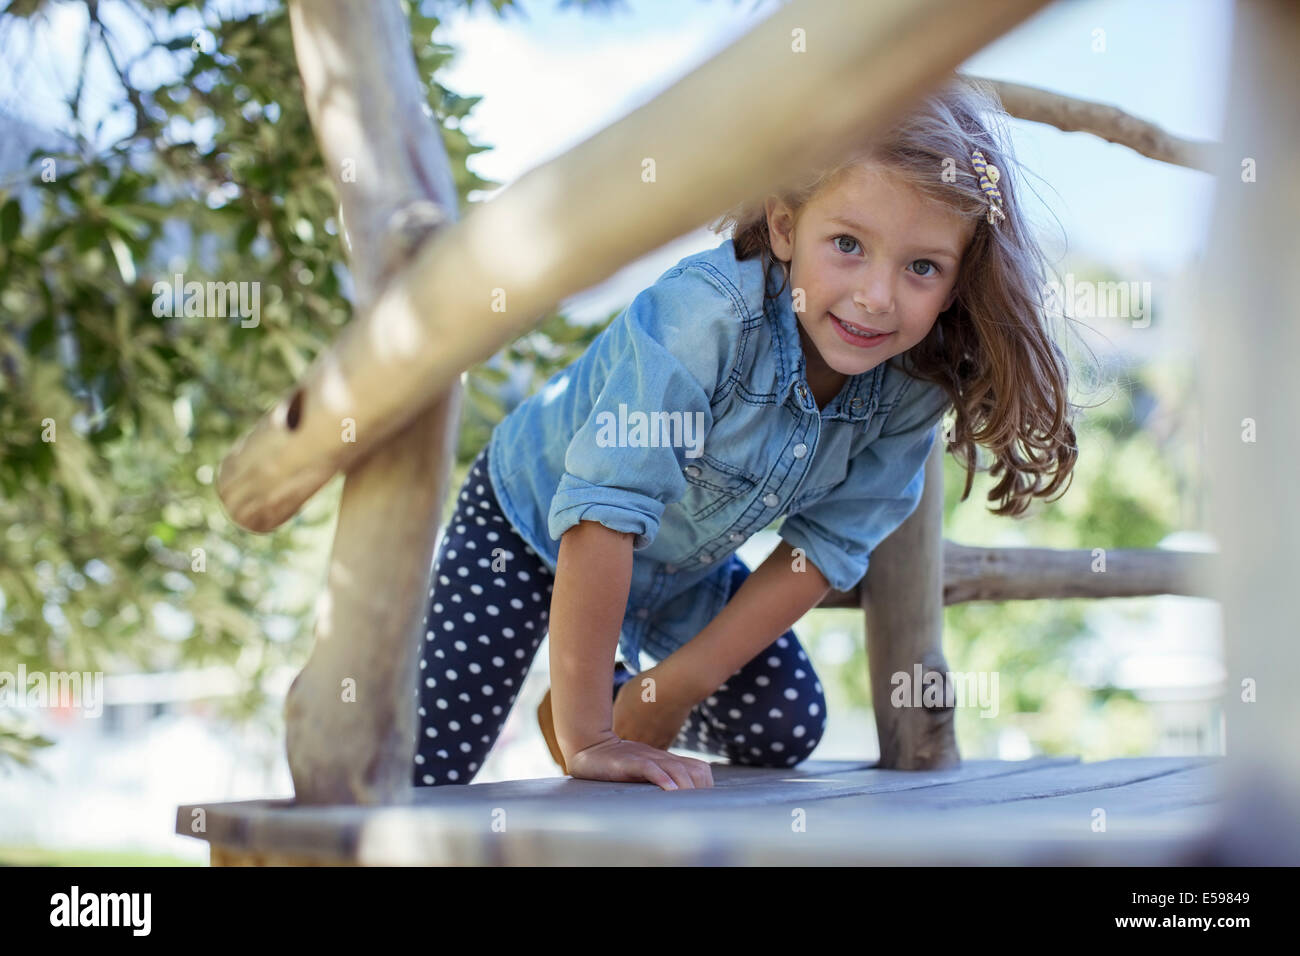 Girl climbing dans treehouse en plein air Photo Stock